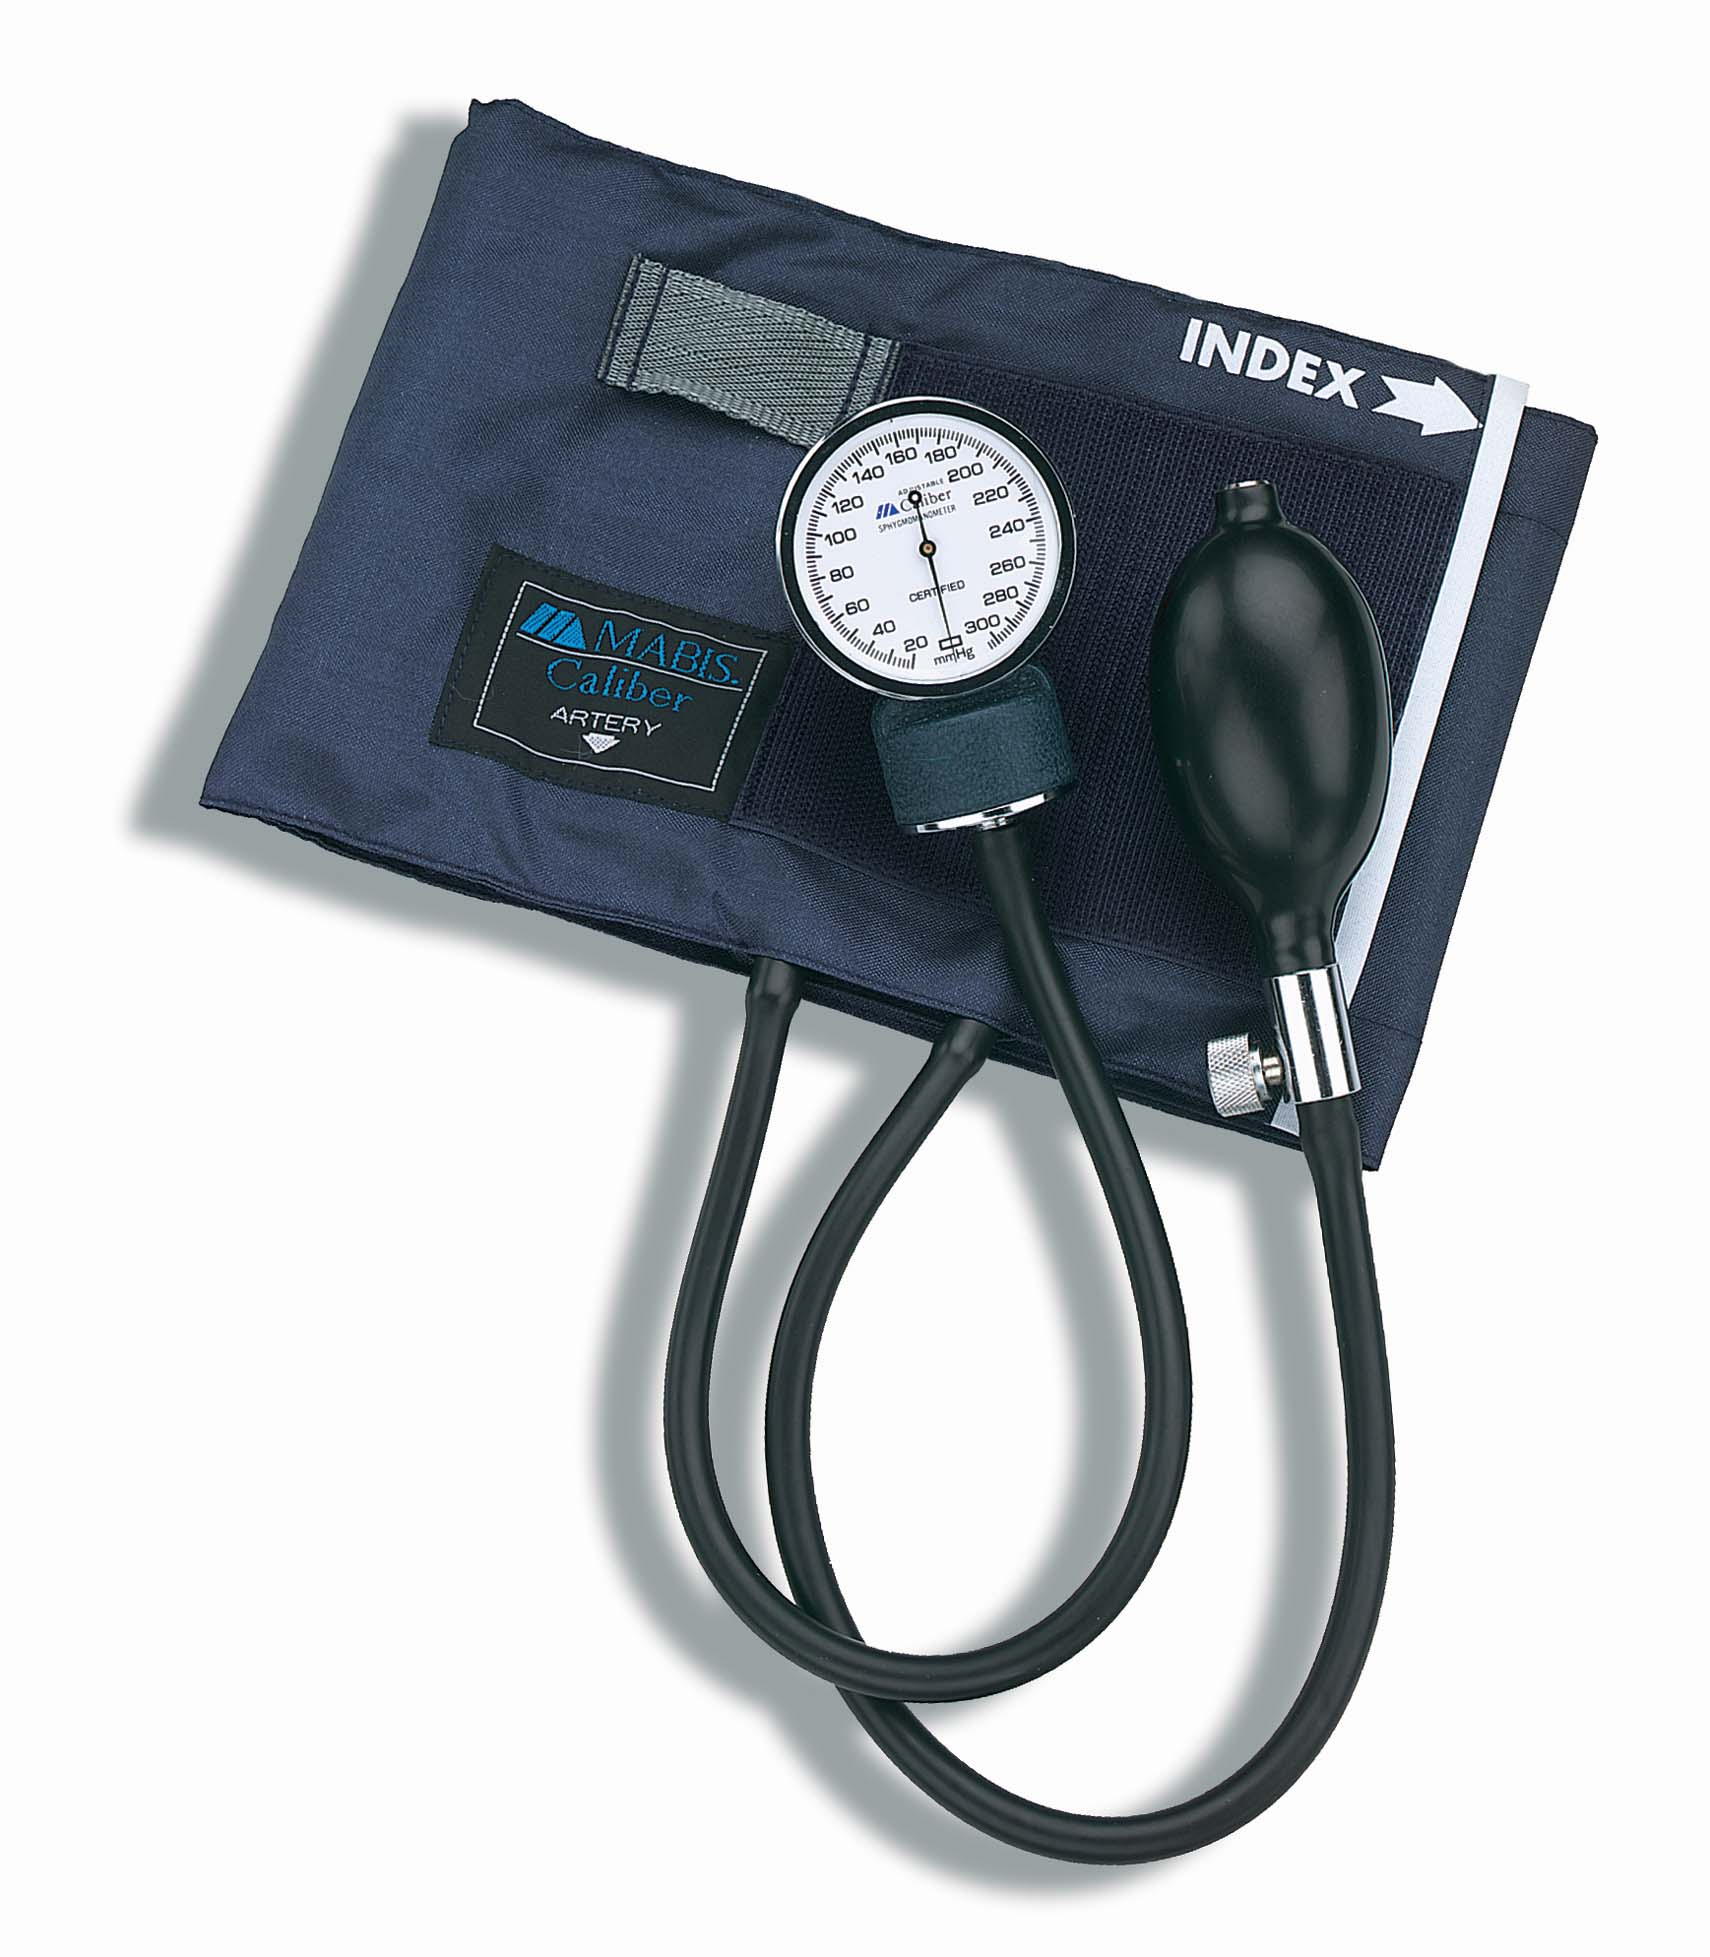 caliber-adjustable-aneroid-sphygmomanometer-blue-nylon-cuff-large-adult-01-133-016-lr.jpg